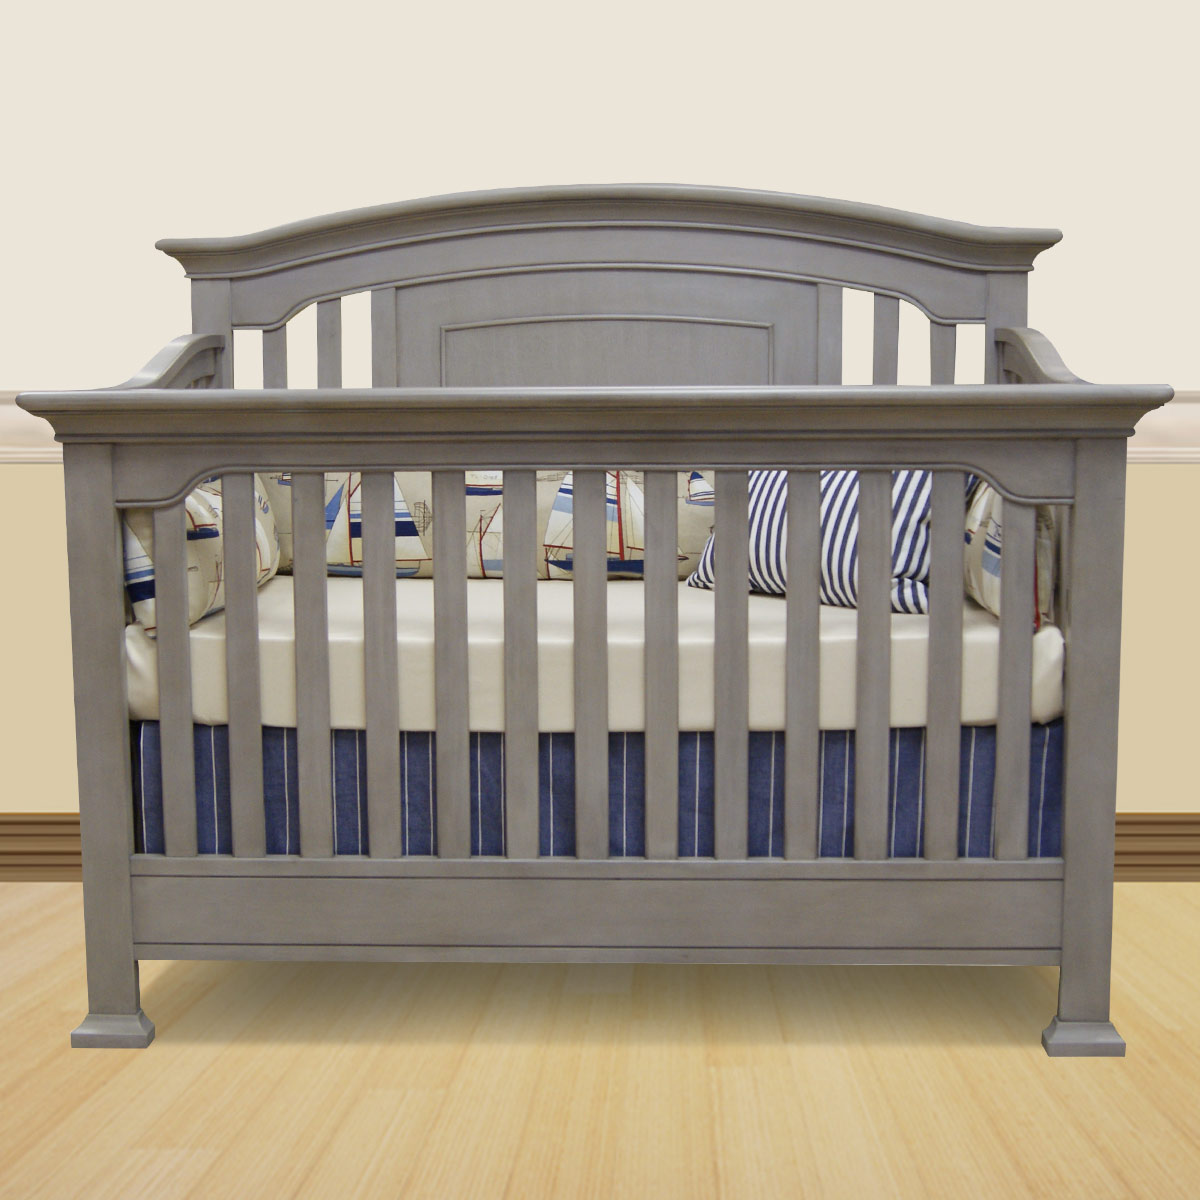 gray crib  design your life - gray crib designerstyle  gray crib designerstyle